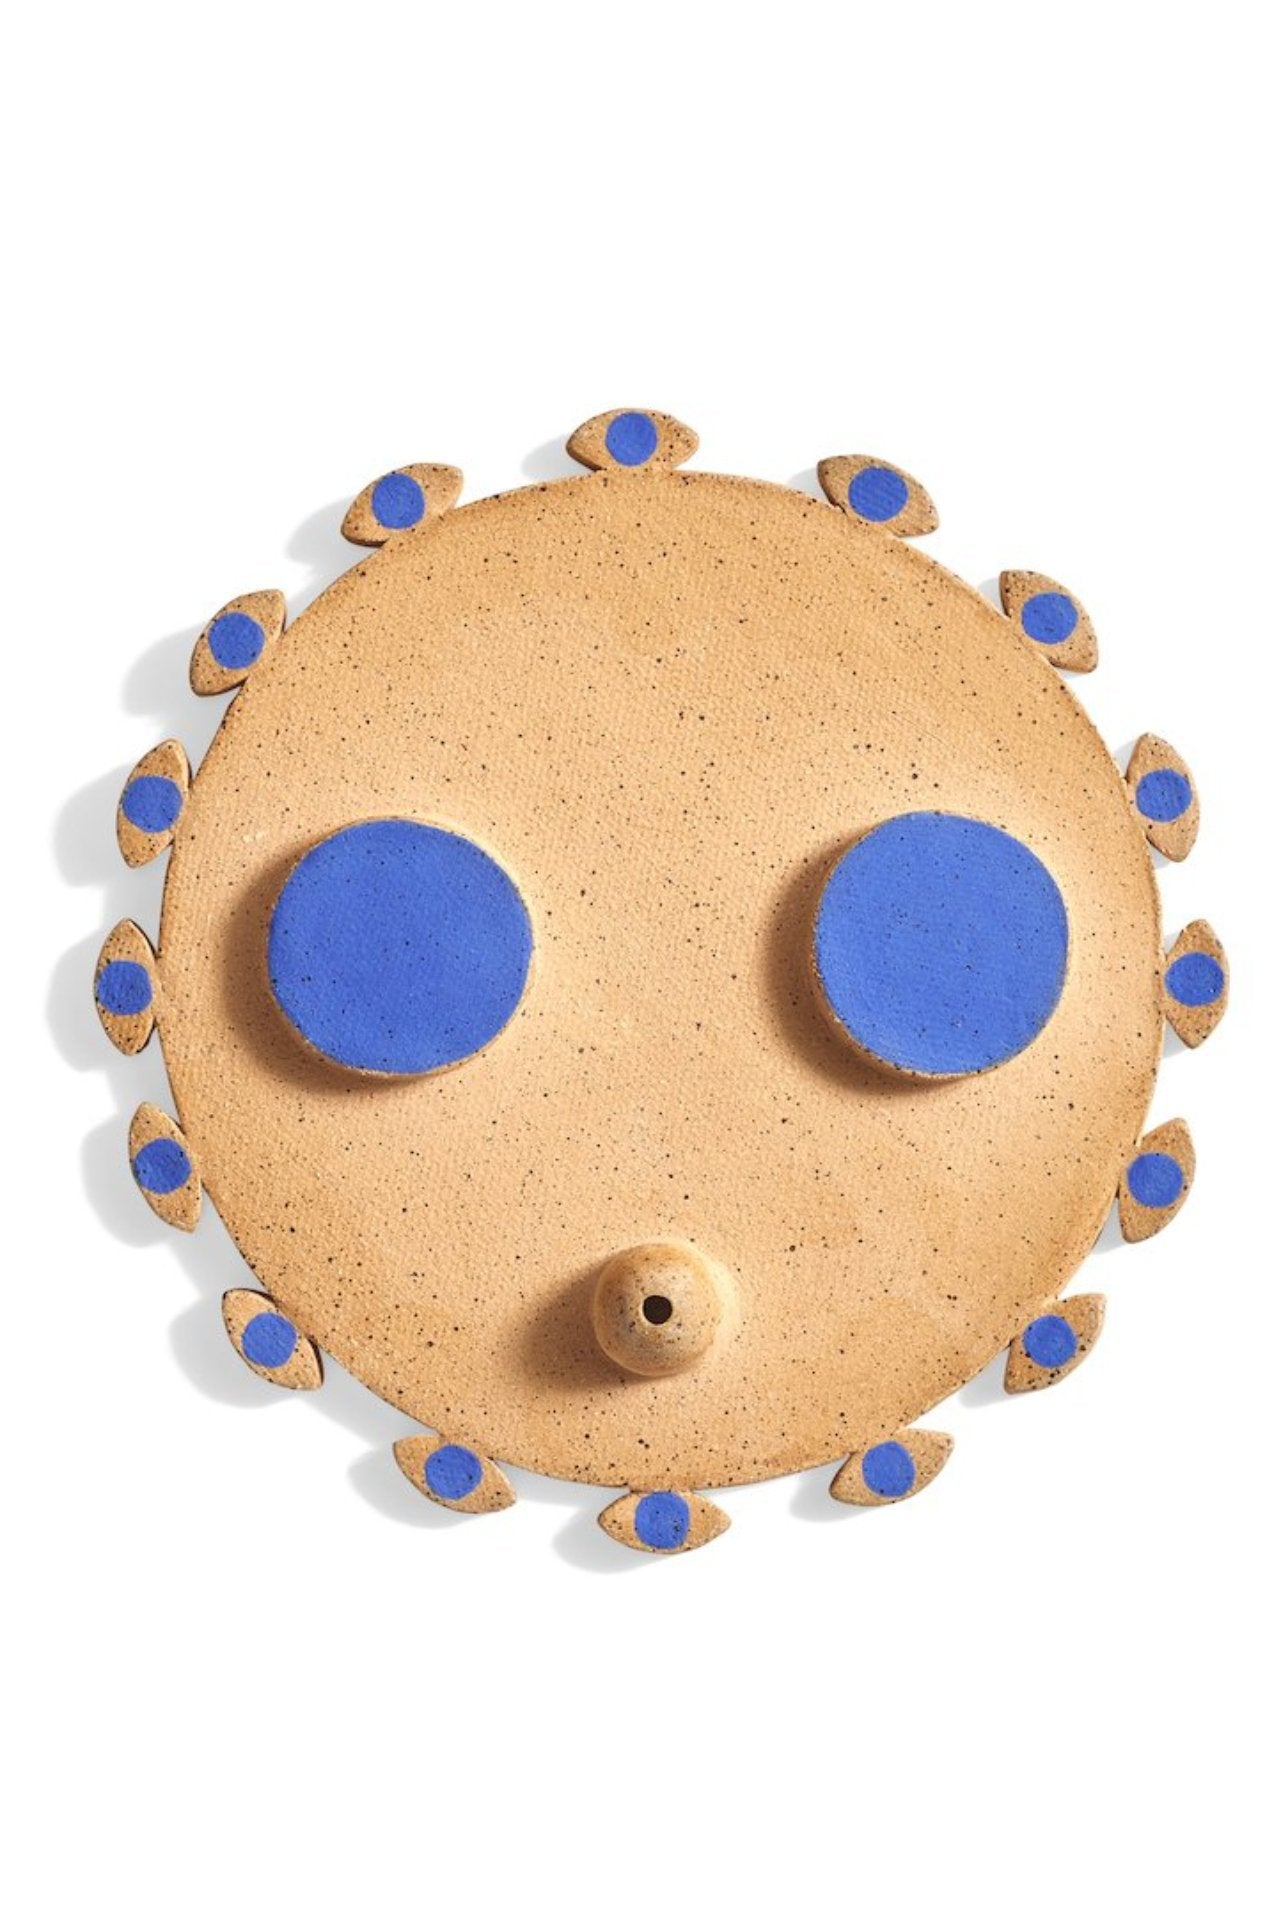 Meha Ceramics Exclusive Ocean Blue Evil Eye Toker Incense Holder